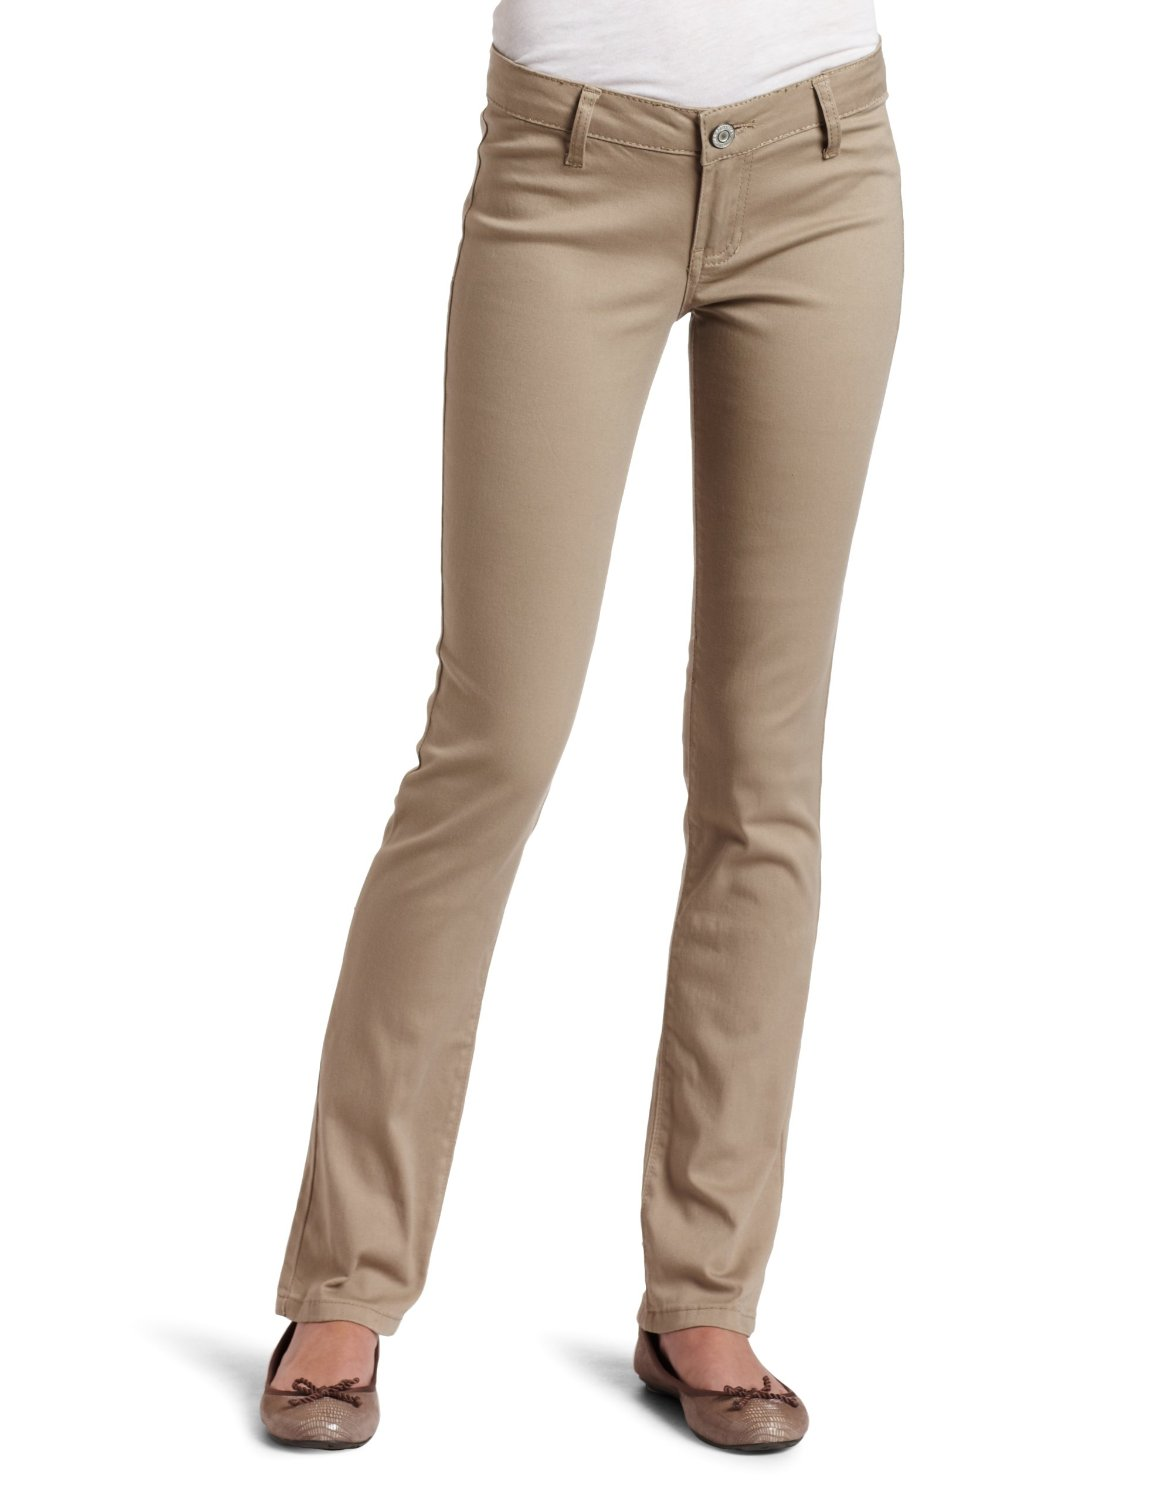 Find great deals on eBay for womens khaki dress pants. Shop with confidence.